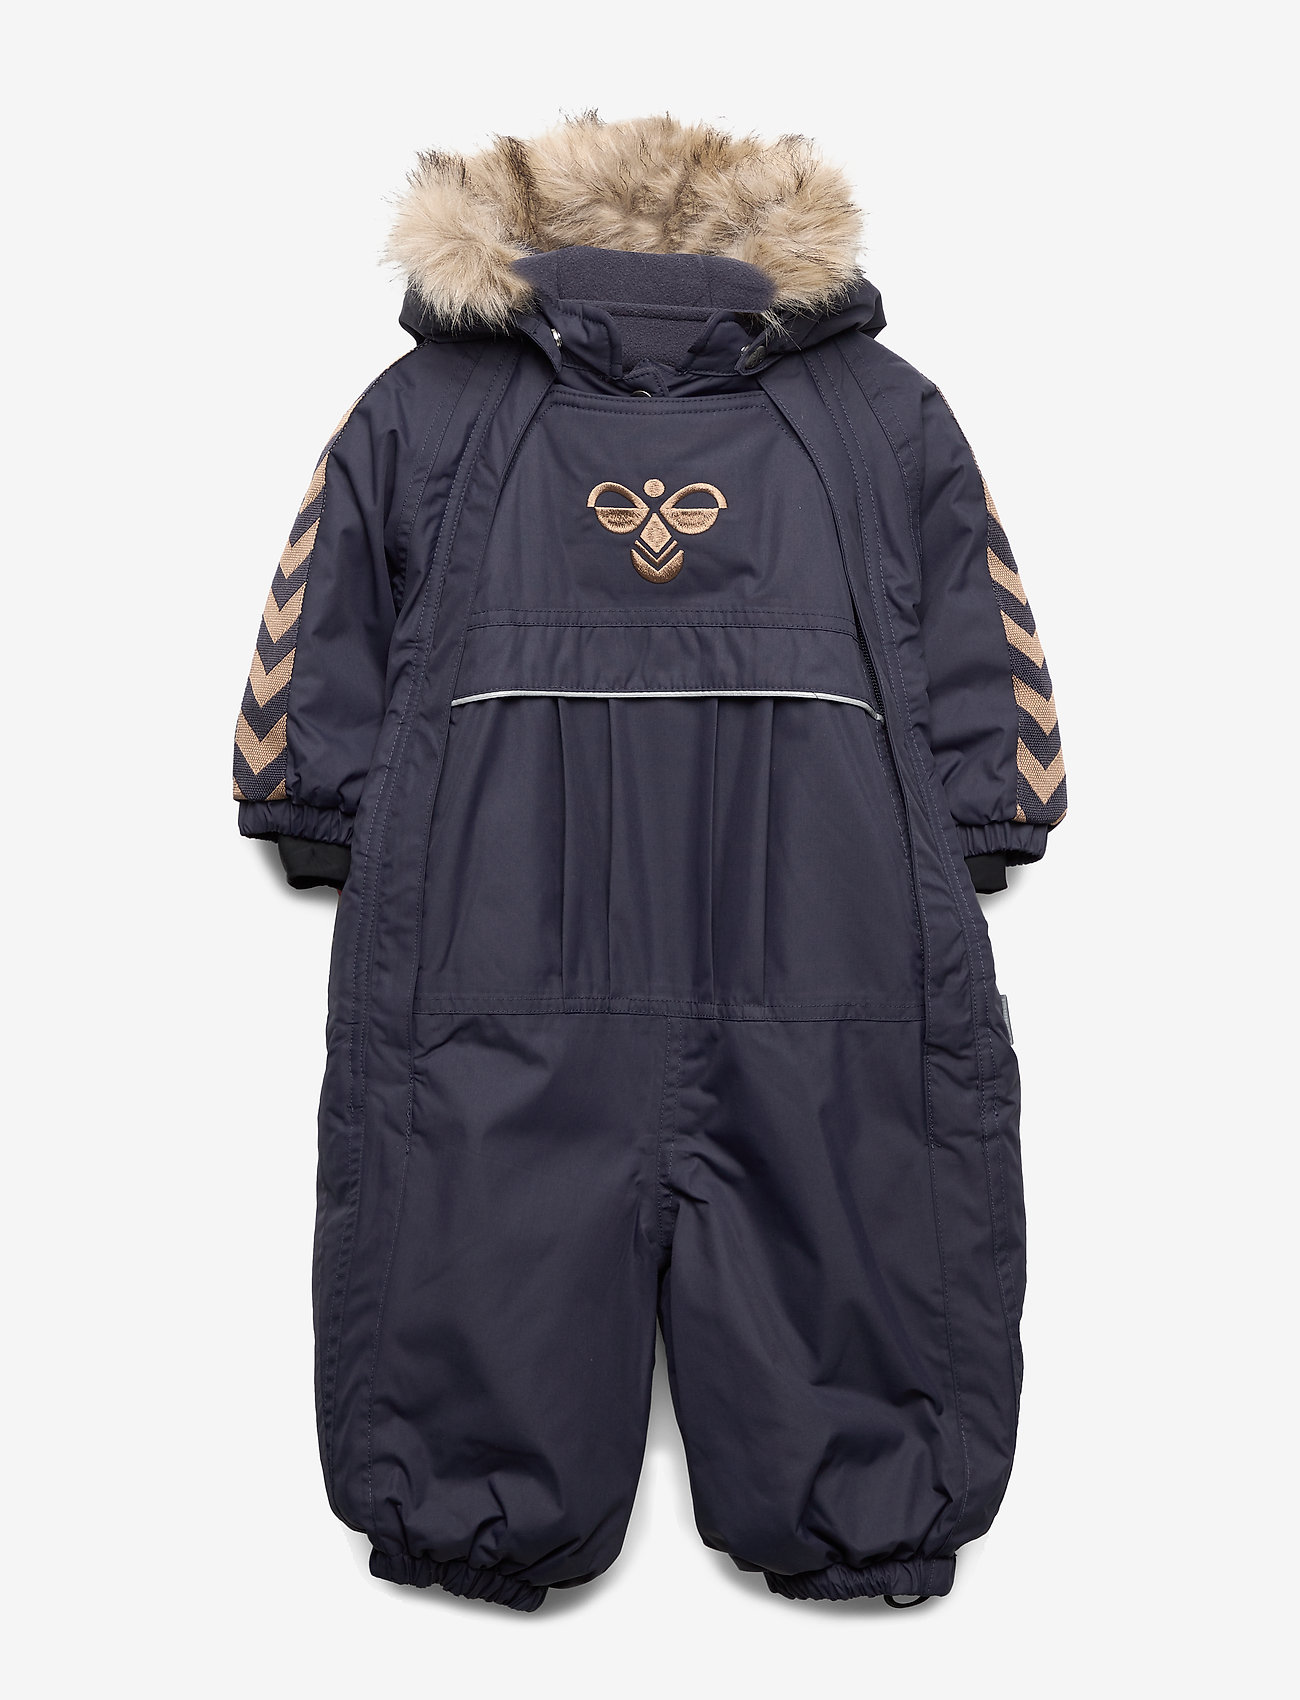 Hummel - hmlMOON SNOWSUIT - snowsuit - graphite - 0